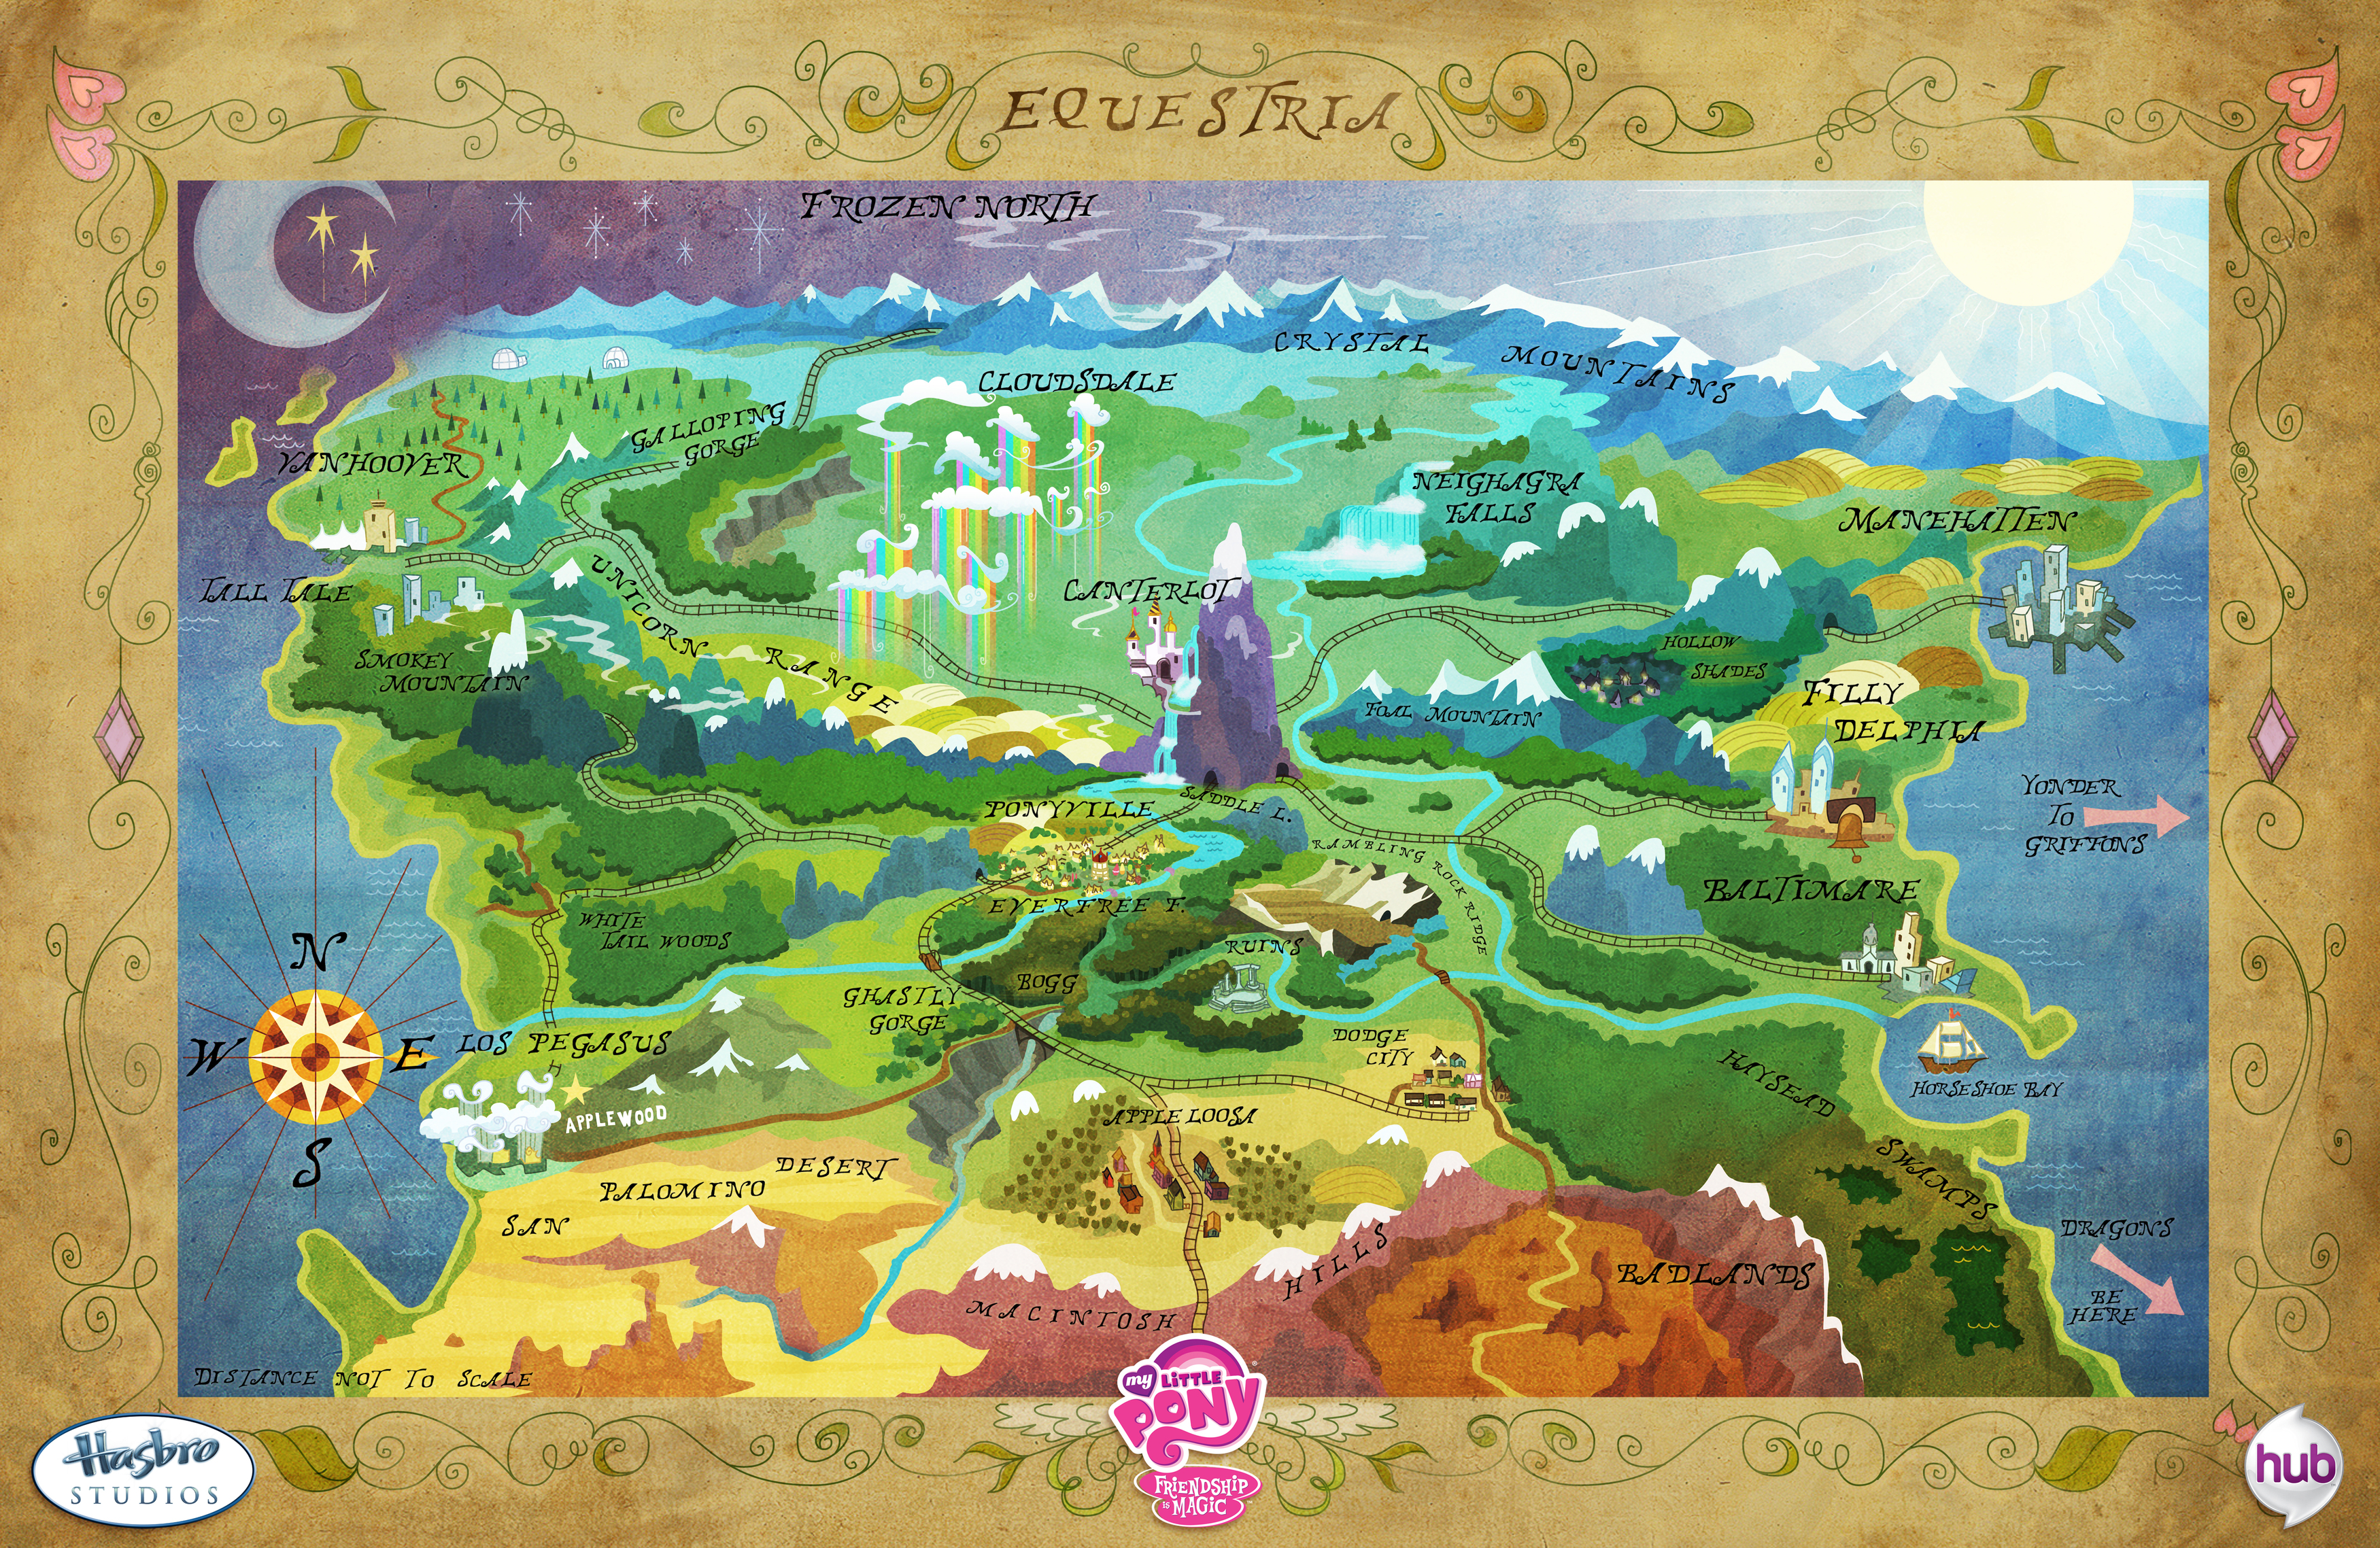 Map_of_Equestria_online_version_2012-08.jpg